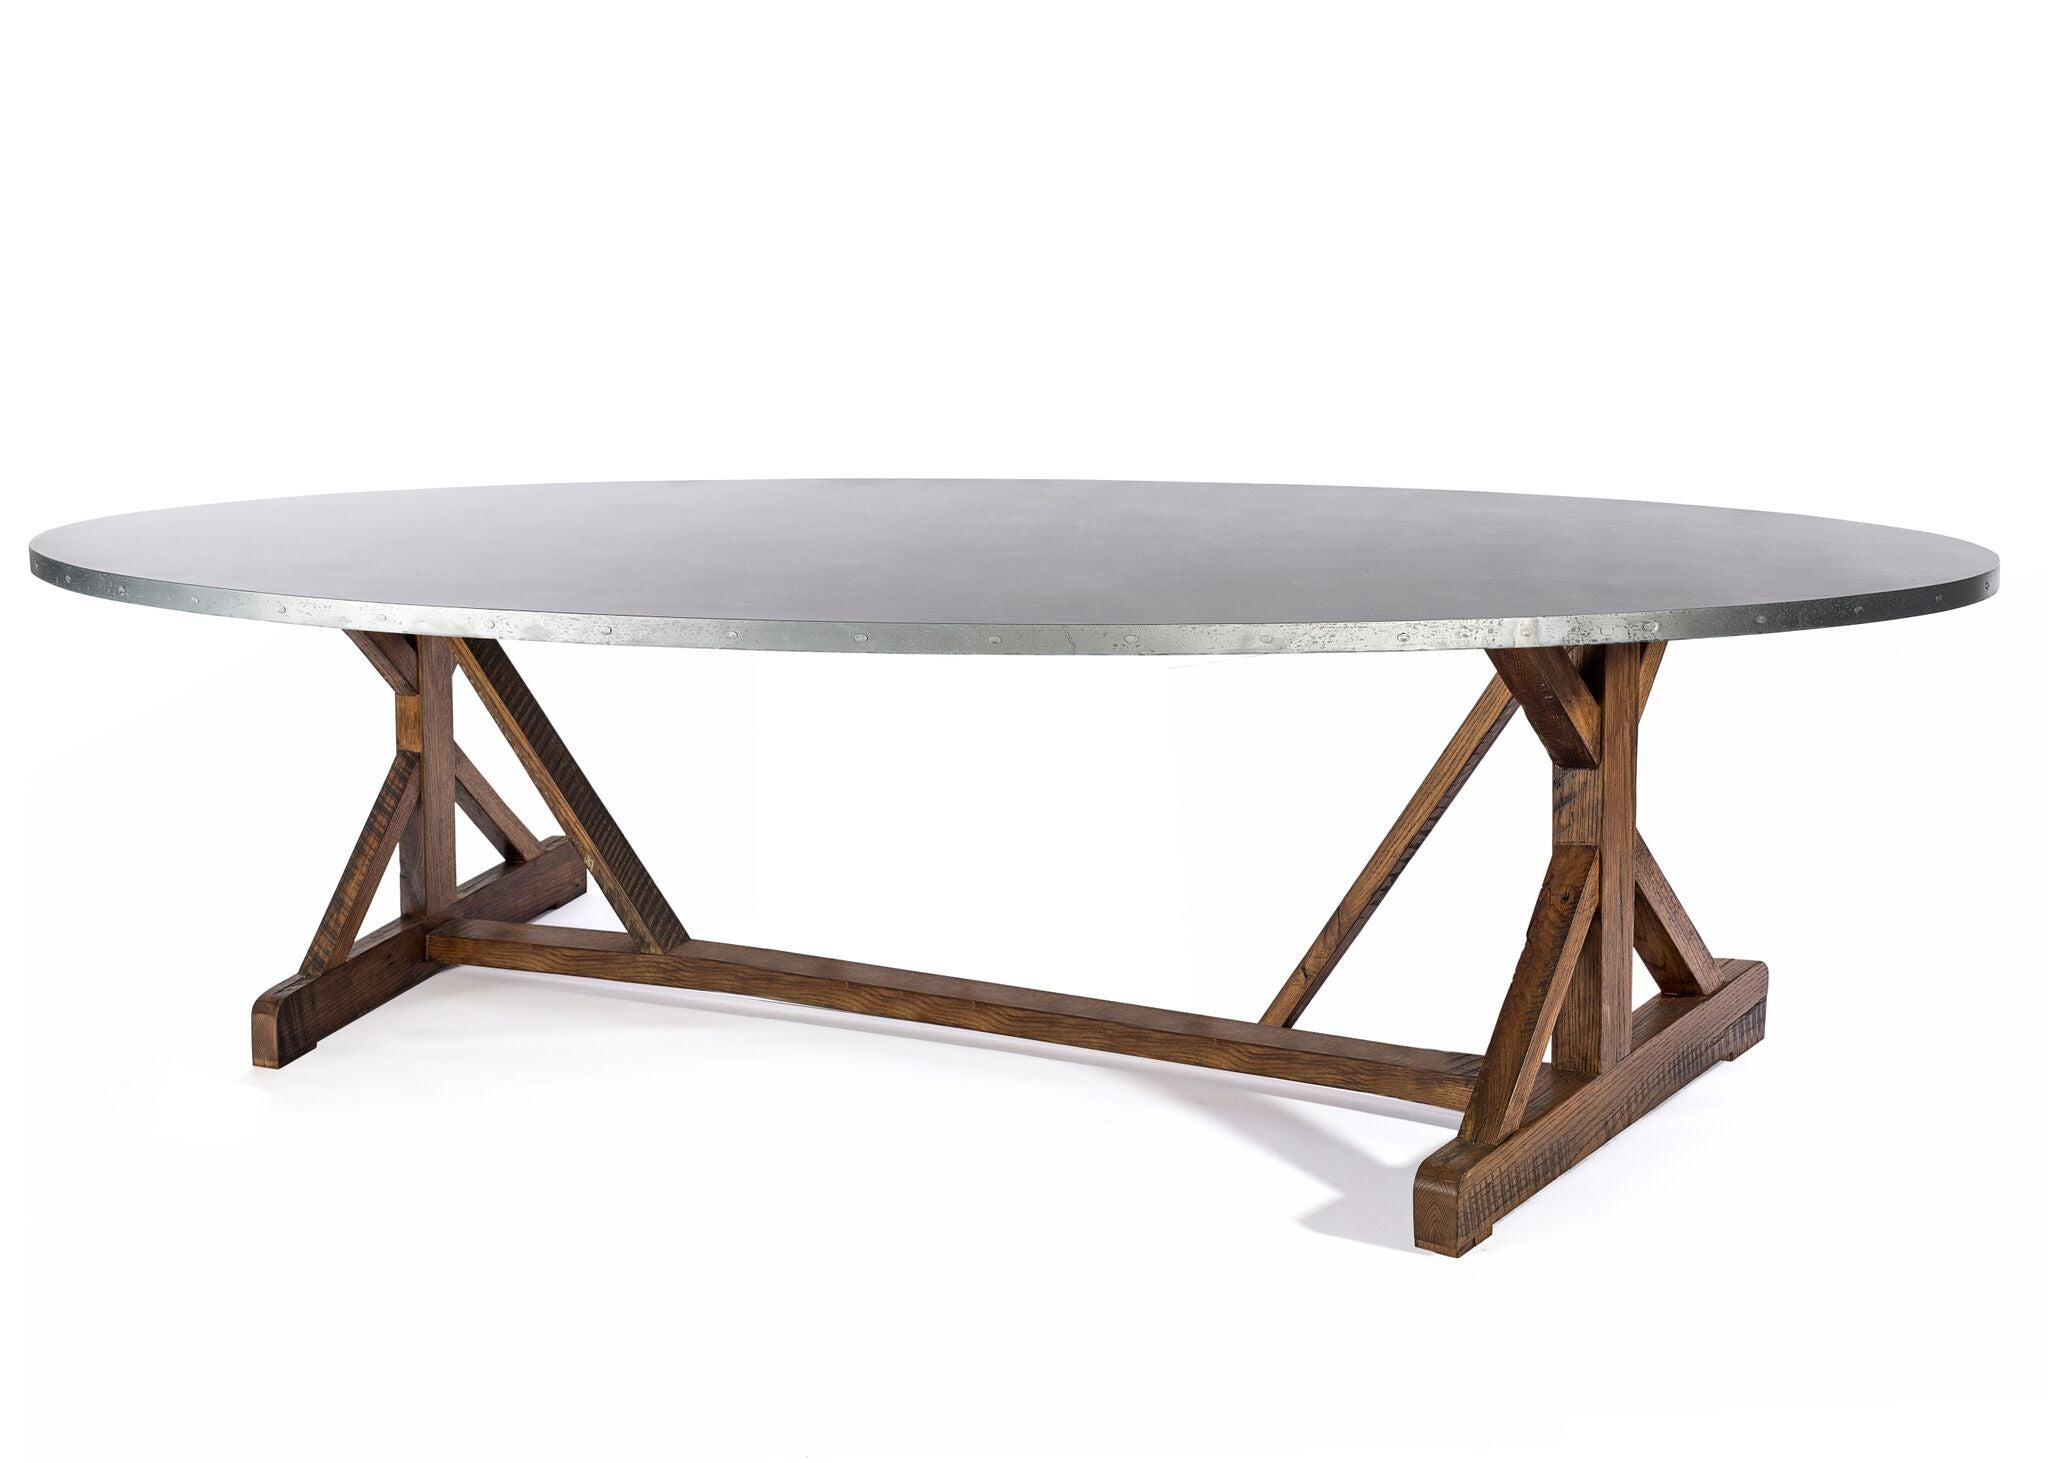 Zinc Oval Tables | Winston | BLACKENED BRONZE | Natural Ash | CUSTOM SIZE L 60.00 W 39.00 H 30.00 | kingston-krafts-zinc-tables.